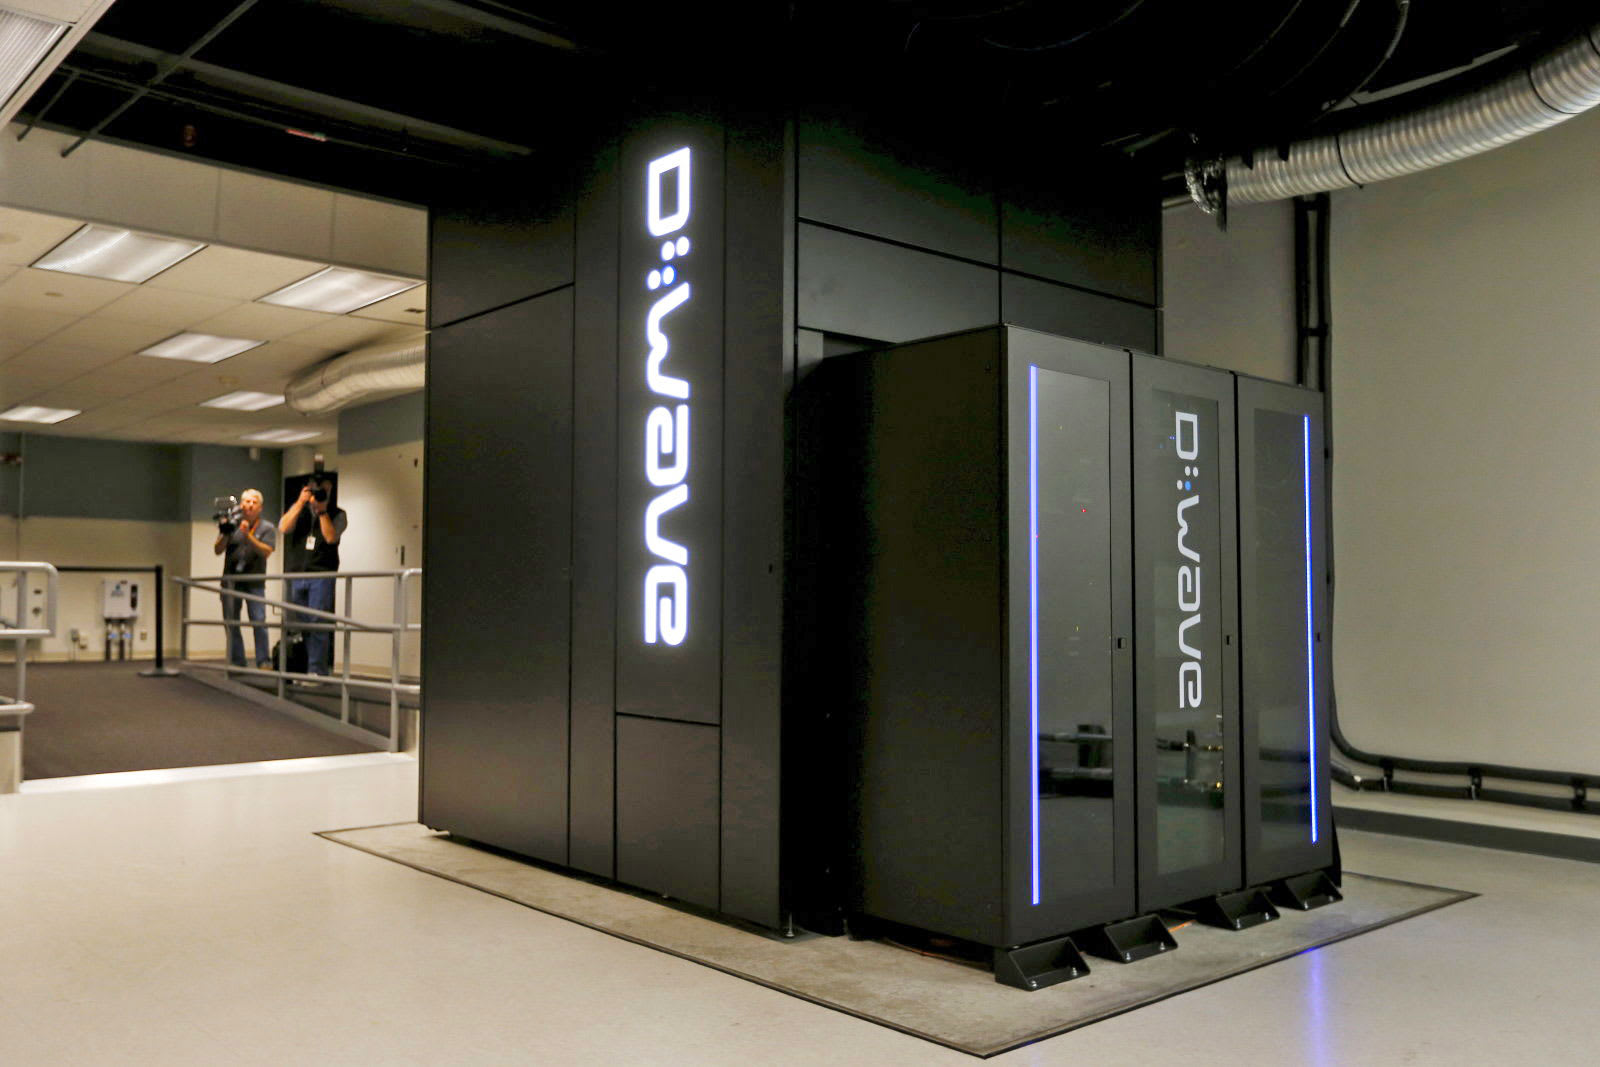 Google wants to sell quantum computing in the cloud